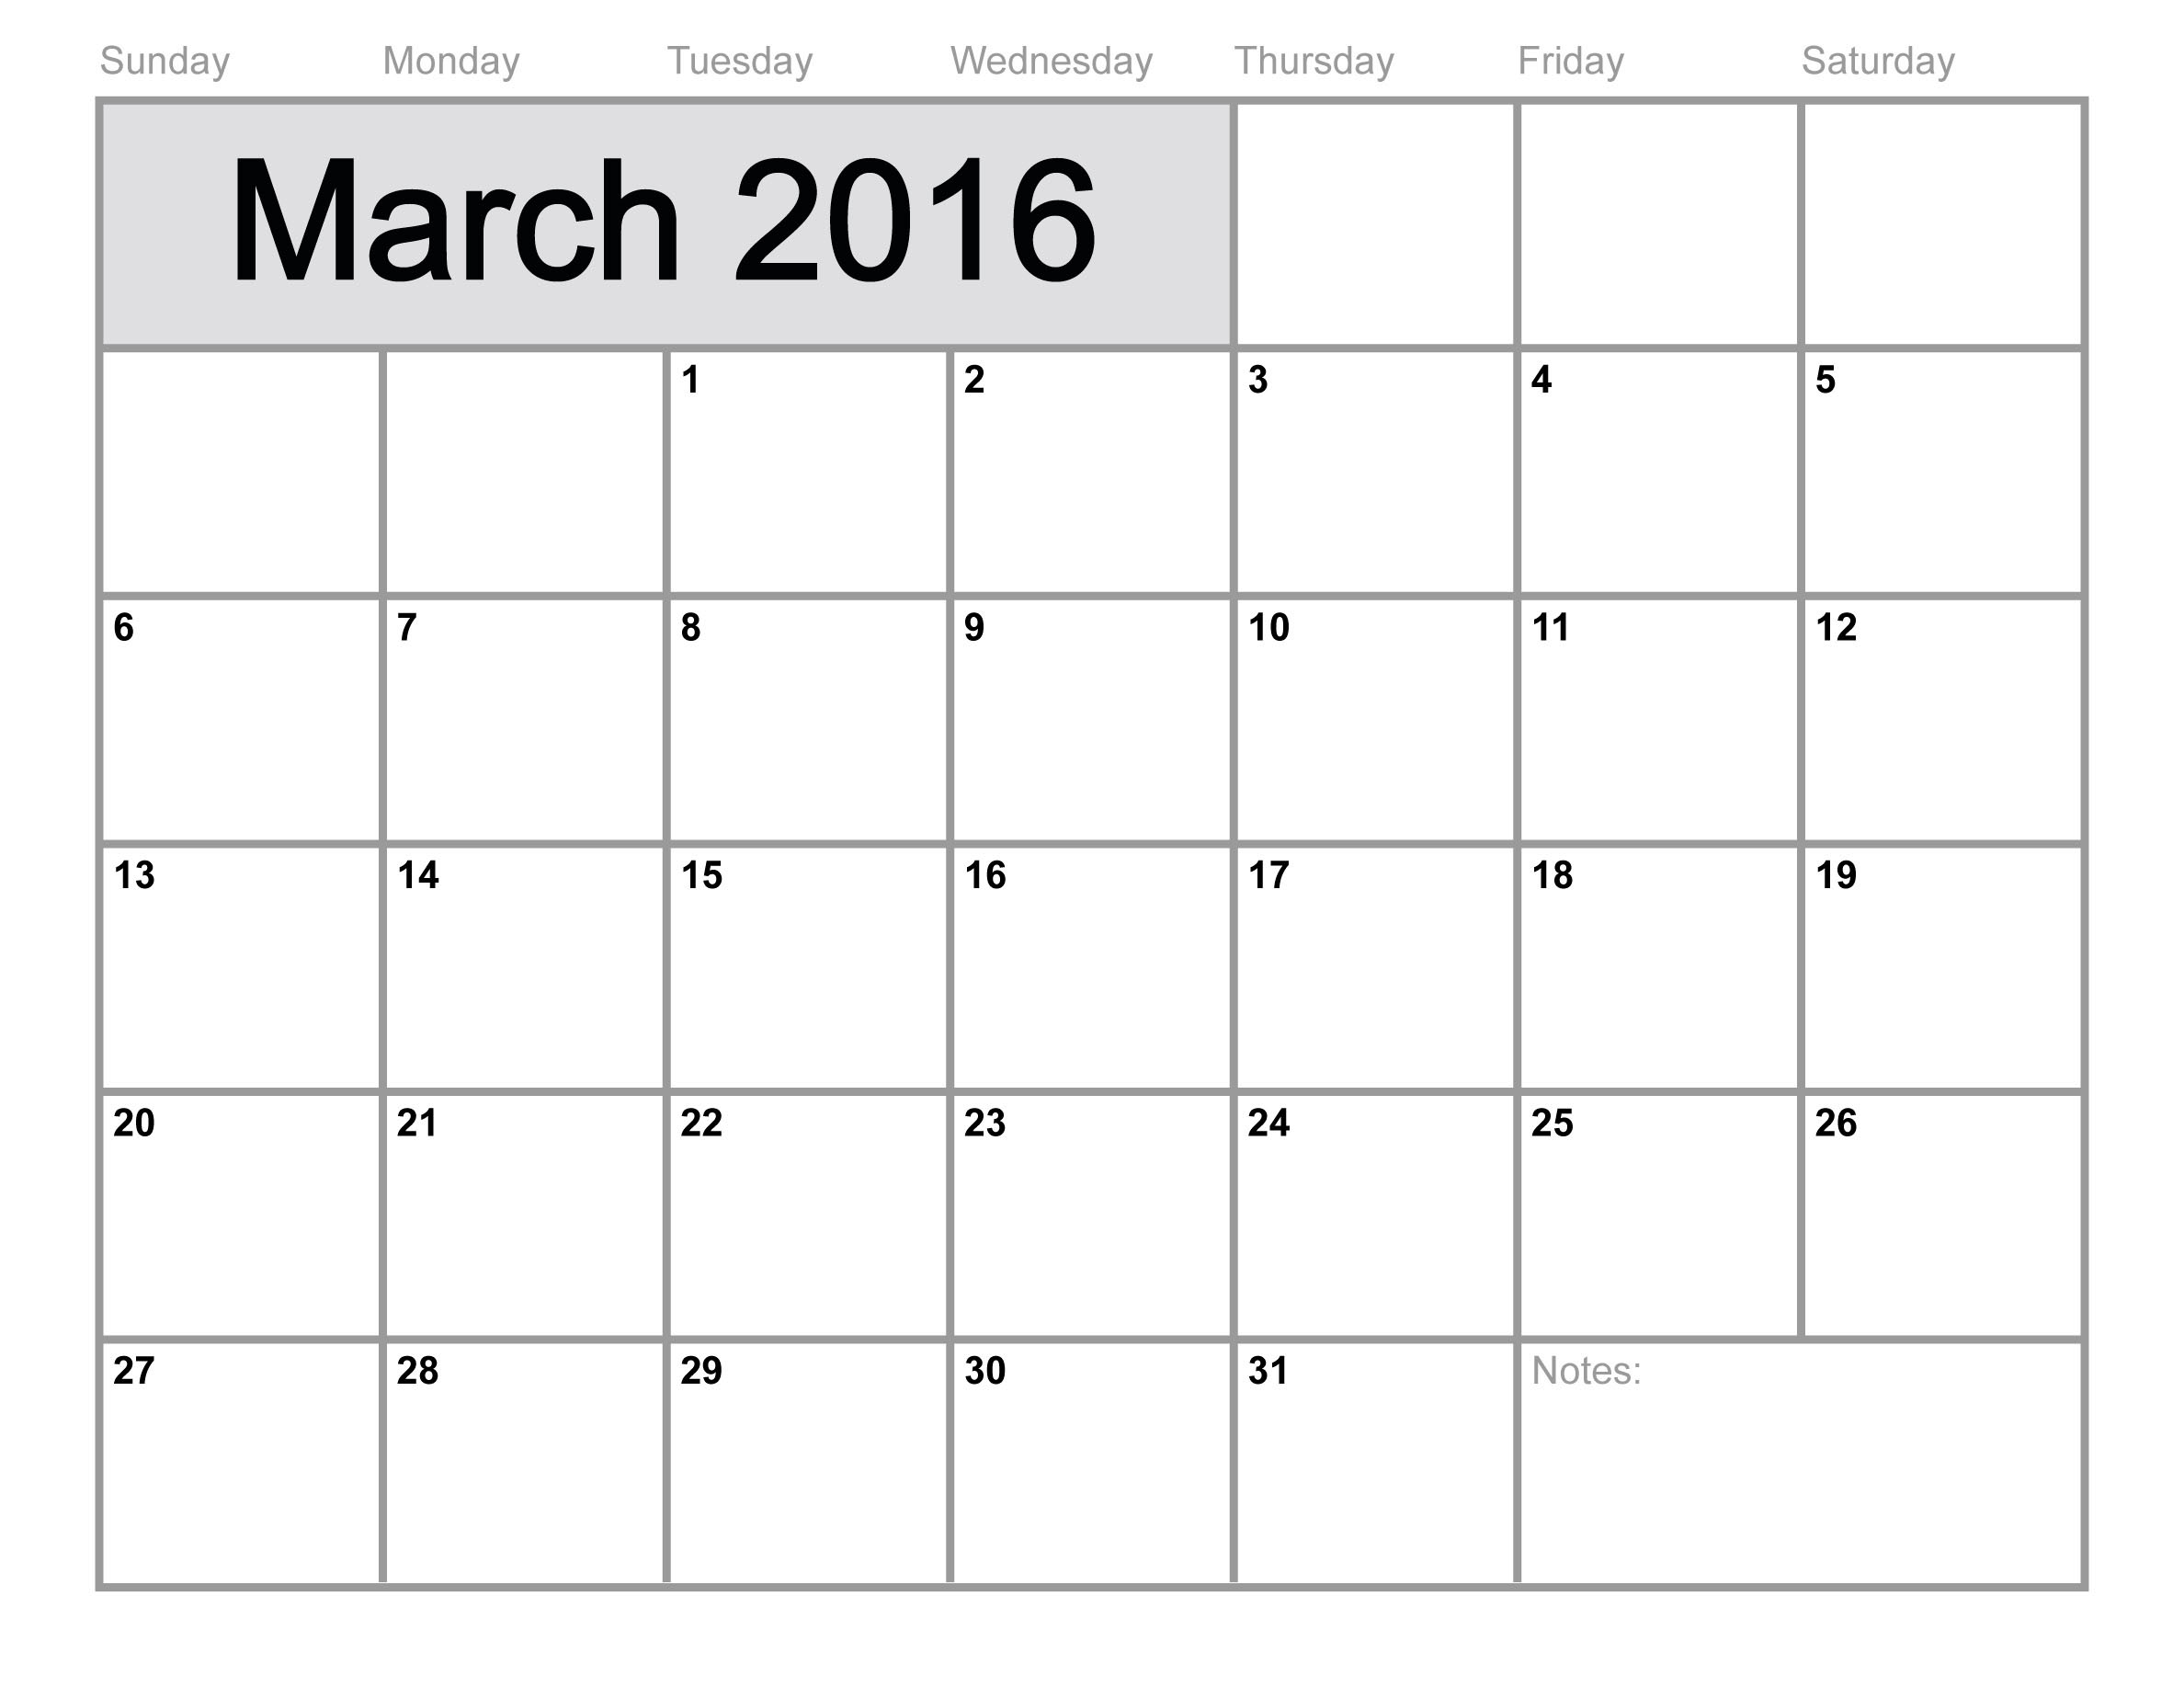 March Calendar 2016 Printable Altlaw Outstanding | mightymic.org